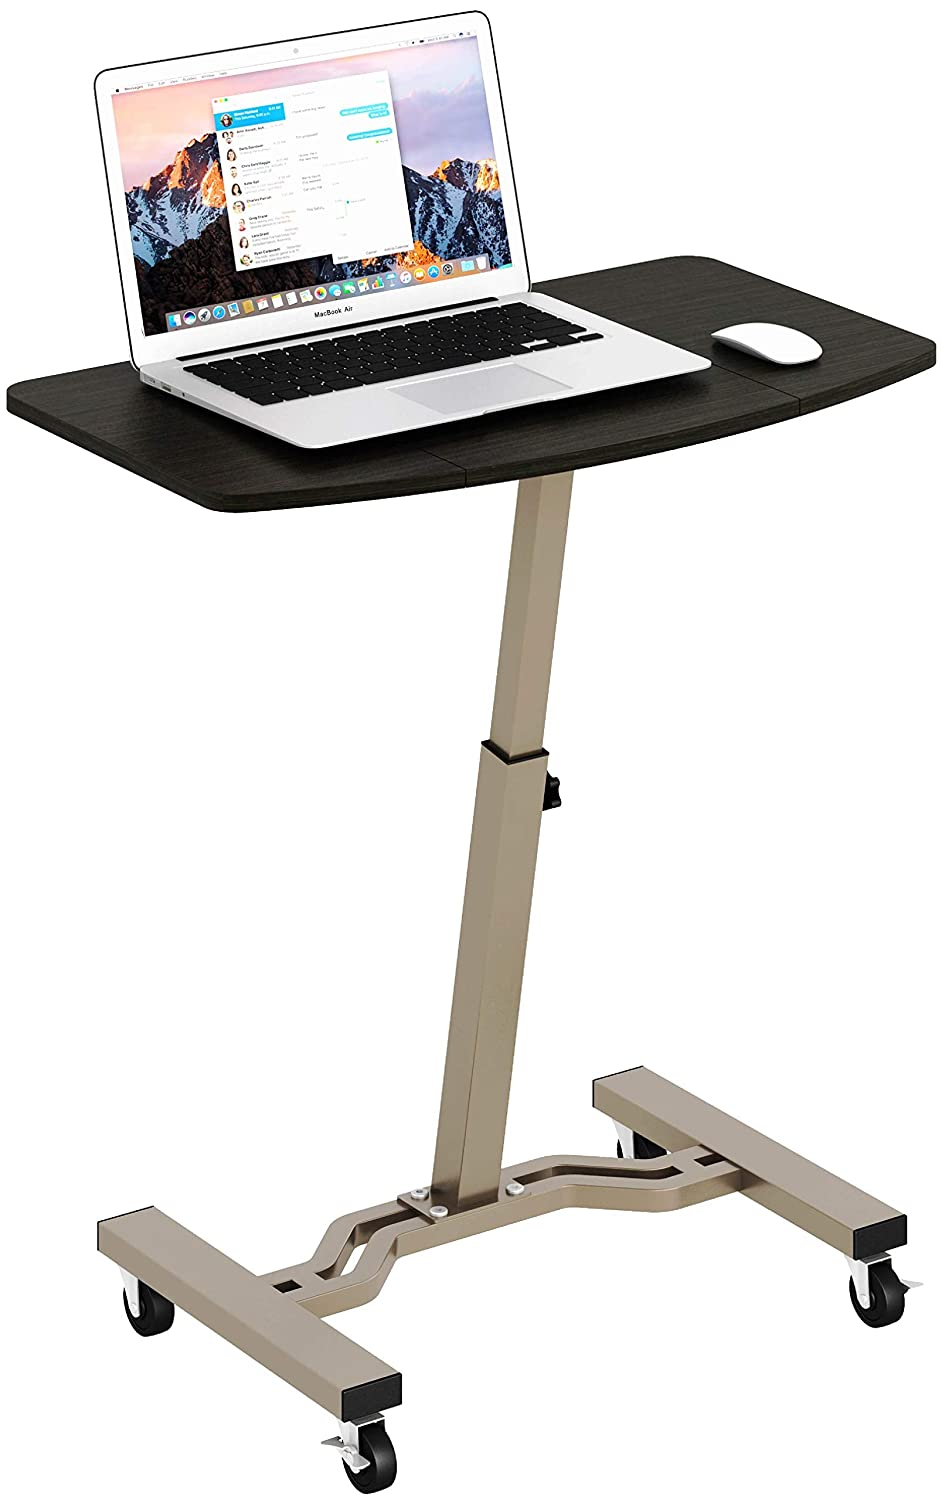 SHW Height Adjustable Mobile Laptop Stand Desk Rolling Cart, Height Adjustable from 28 to 33